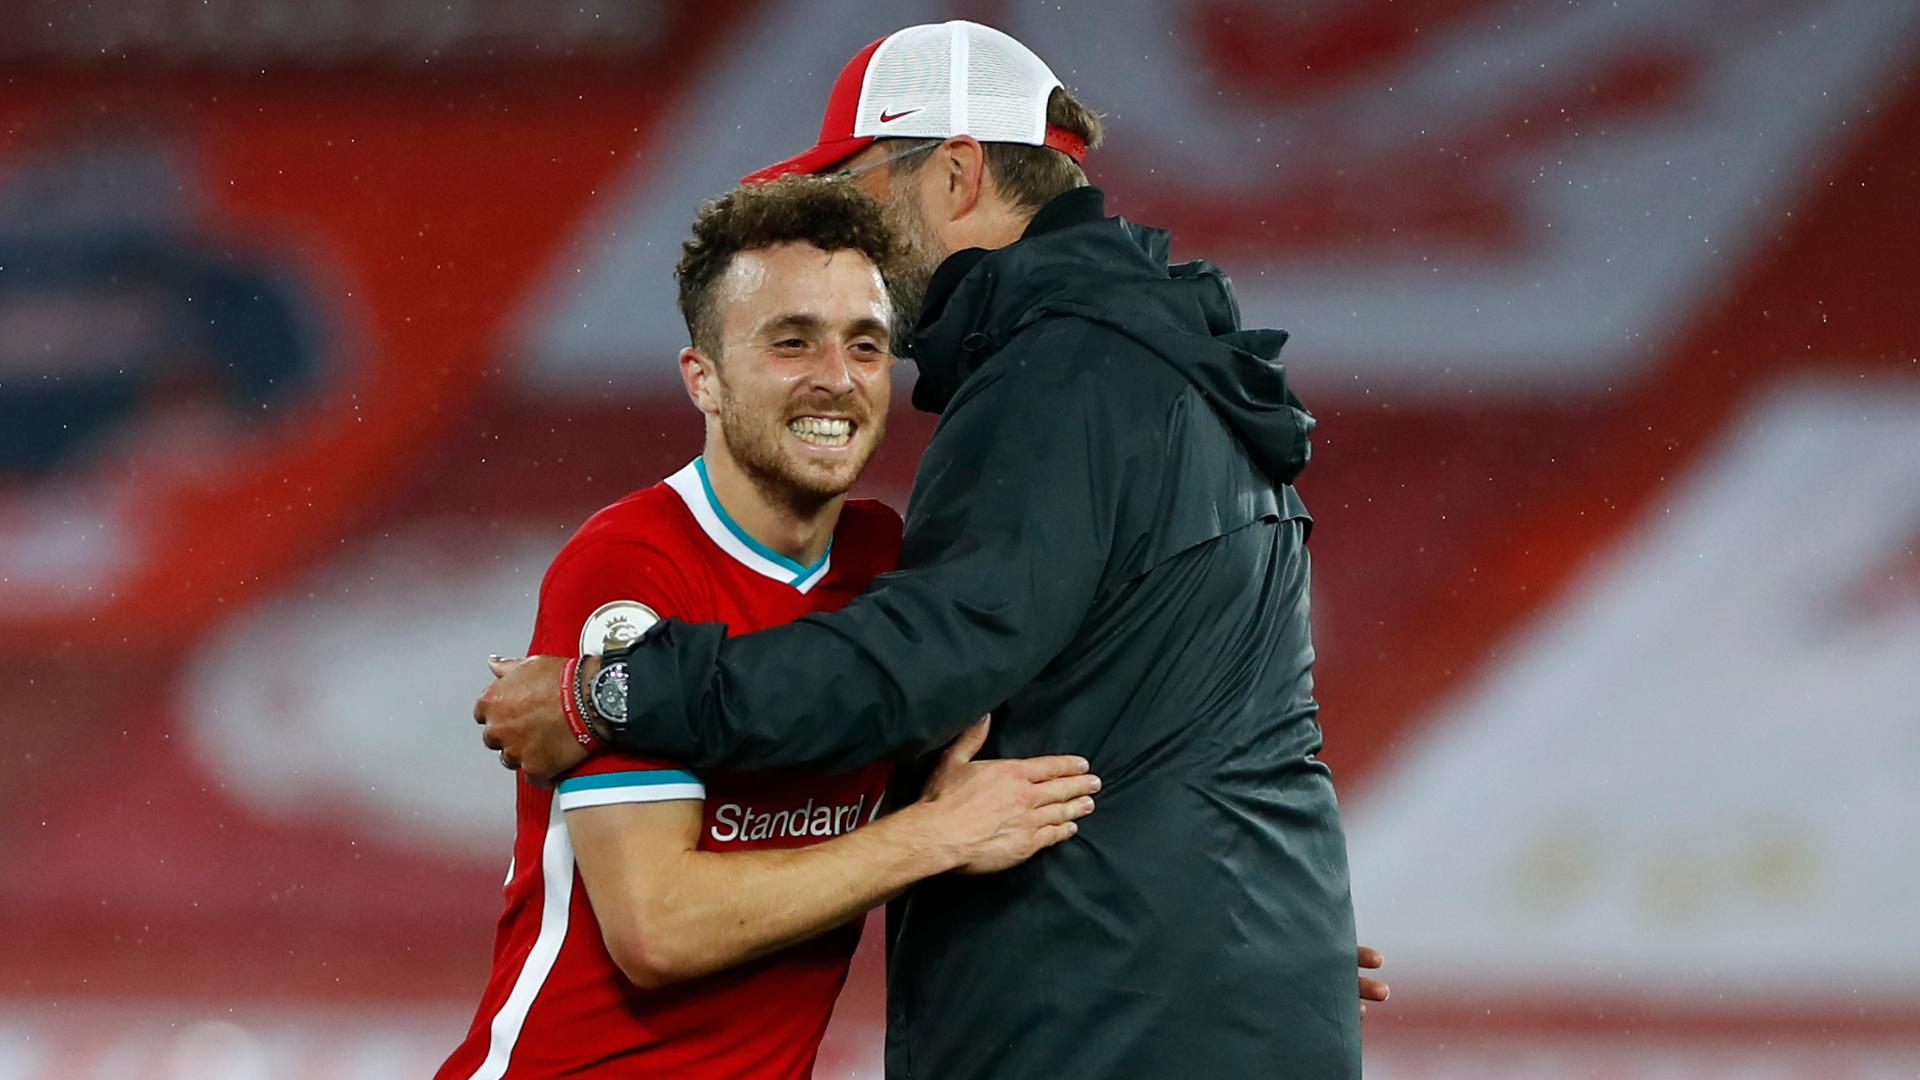 he s been on my list for two or three years klopp hails jota after first liverpool goal klopp hails jota after first liverpool goal